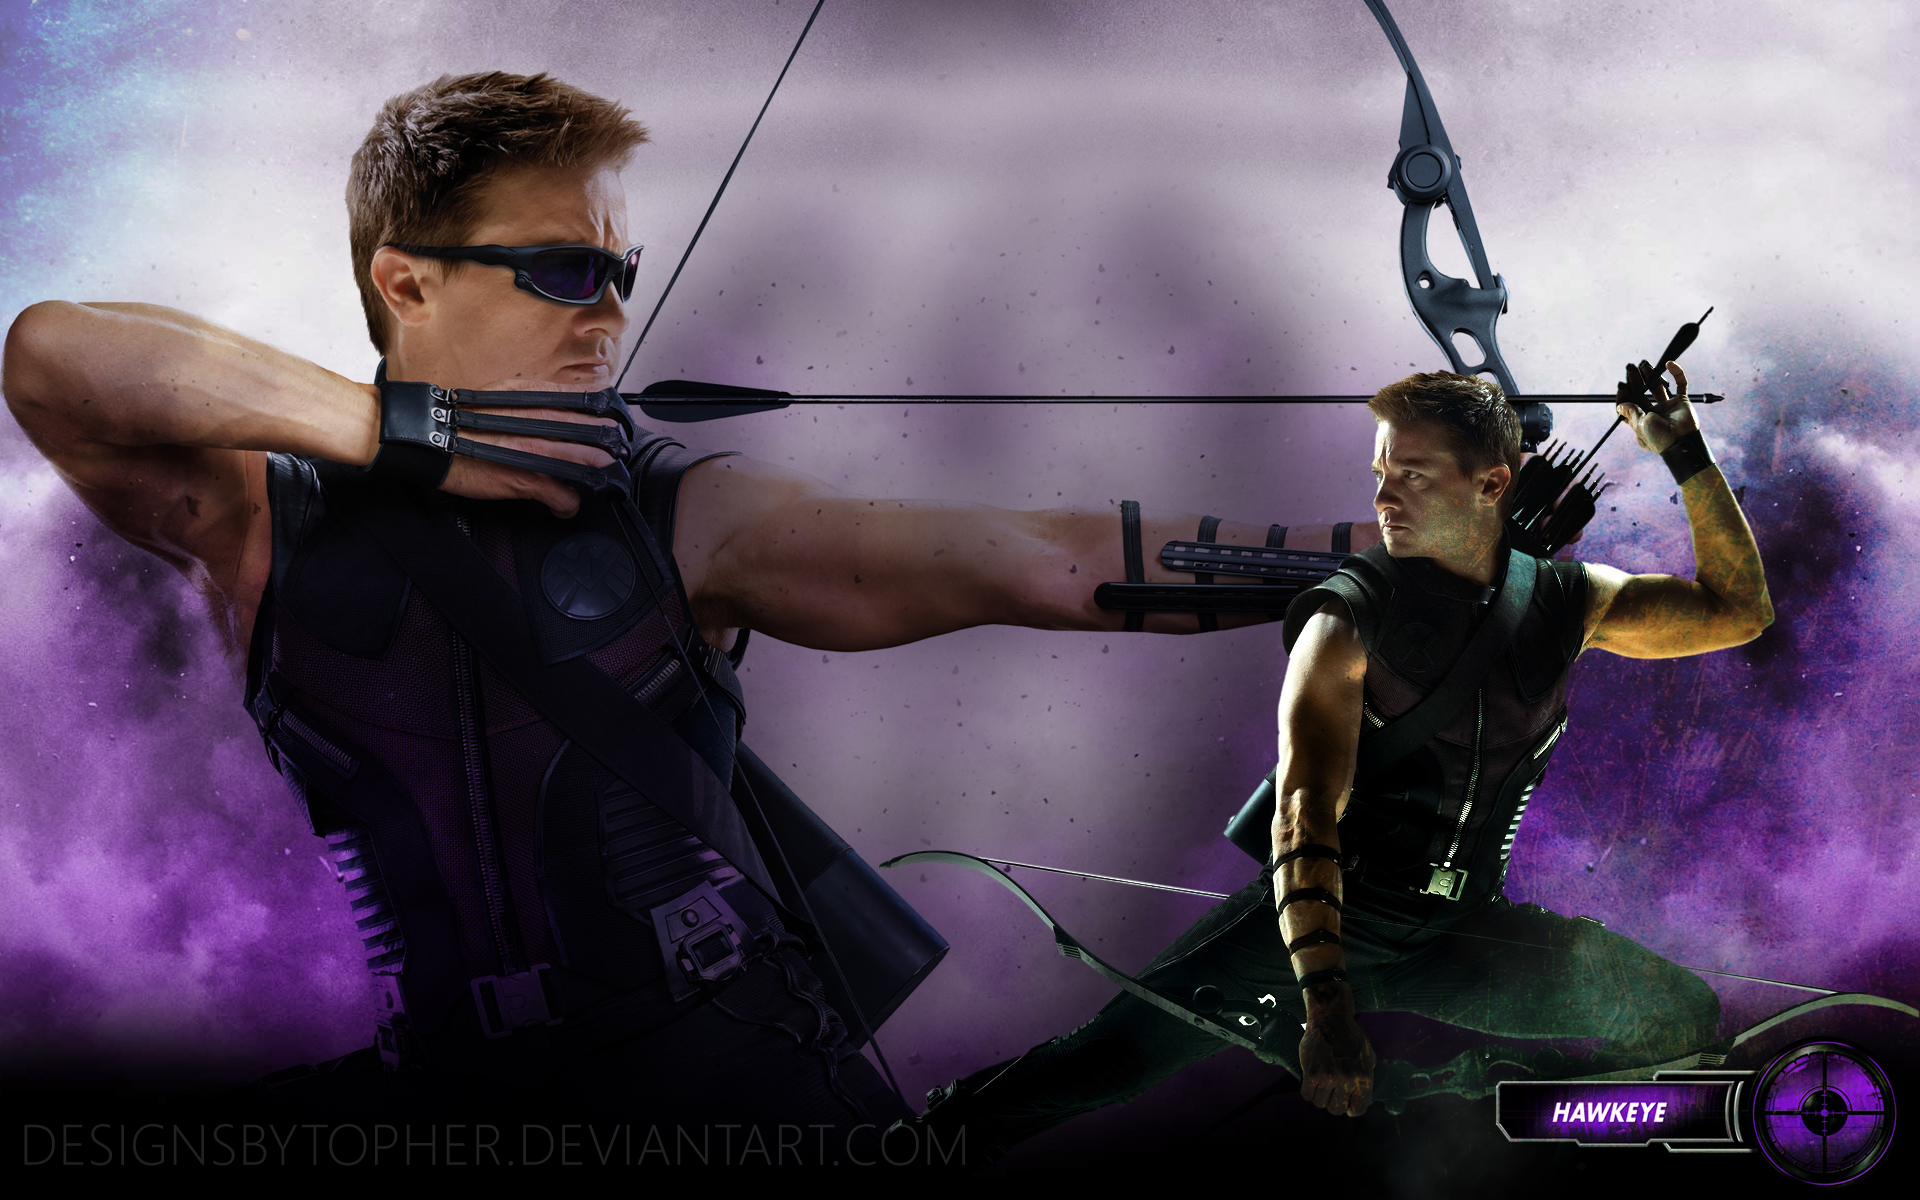 hawkeye the avengers by designsbytopher customization wallpaper hdtv 1920x1200